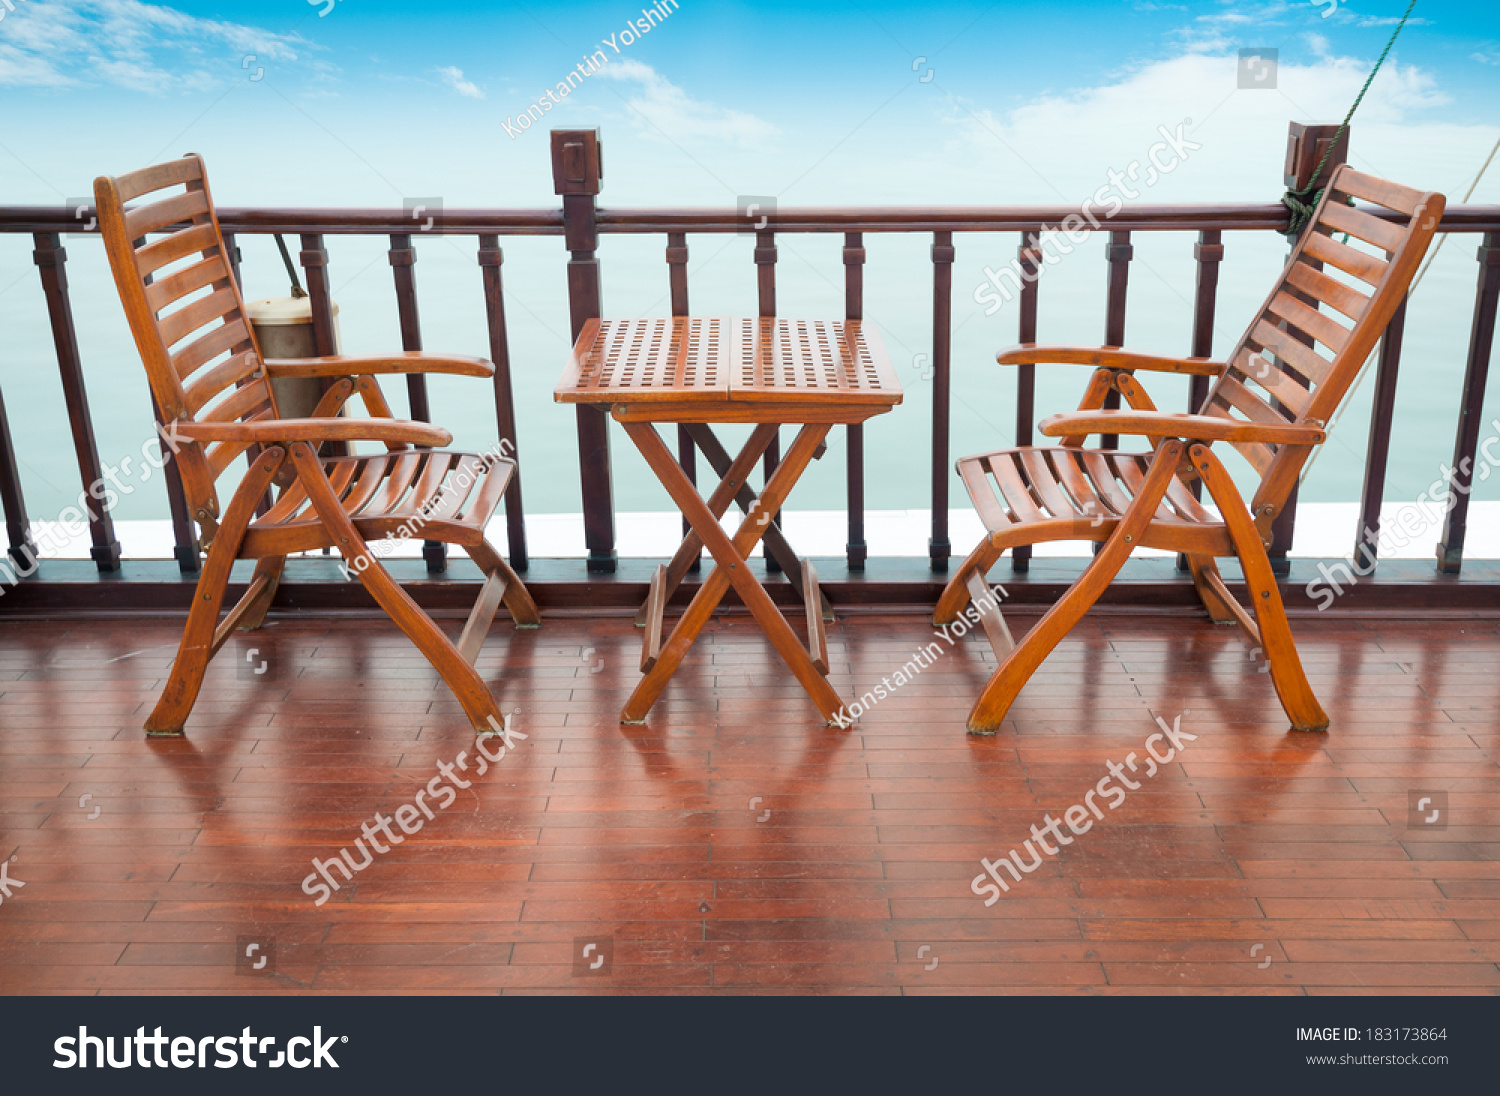 Empty Wooden Deck Chairs Table On Stock Photo (Edit Now) 183173864